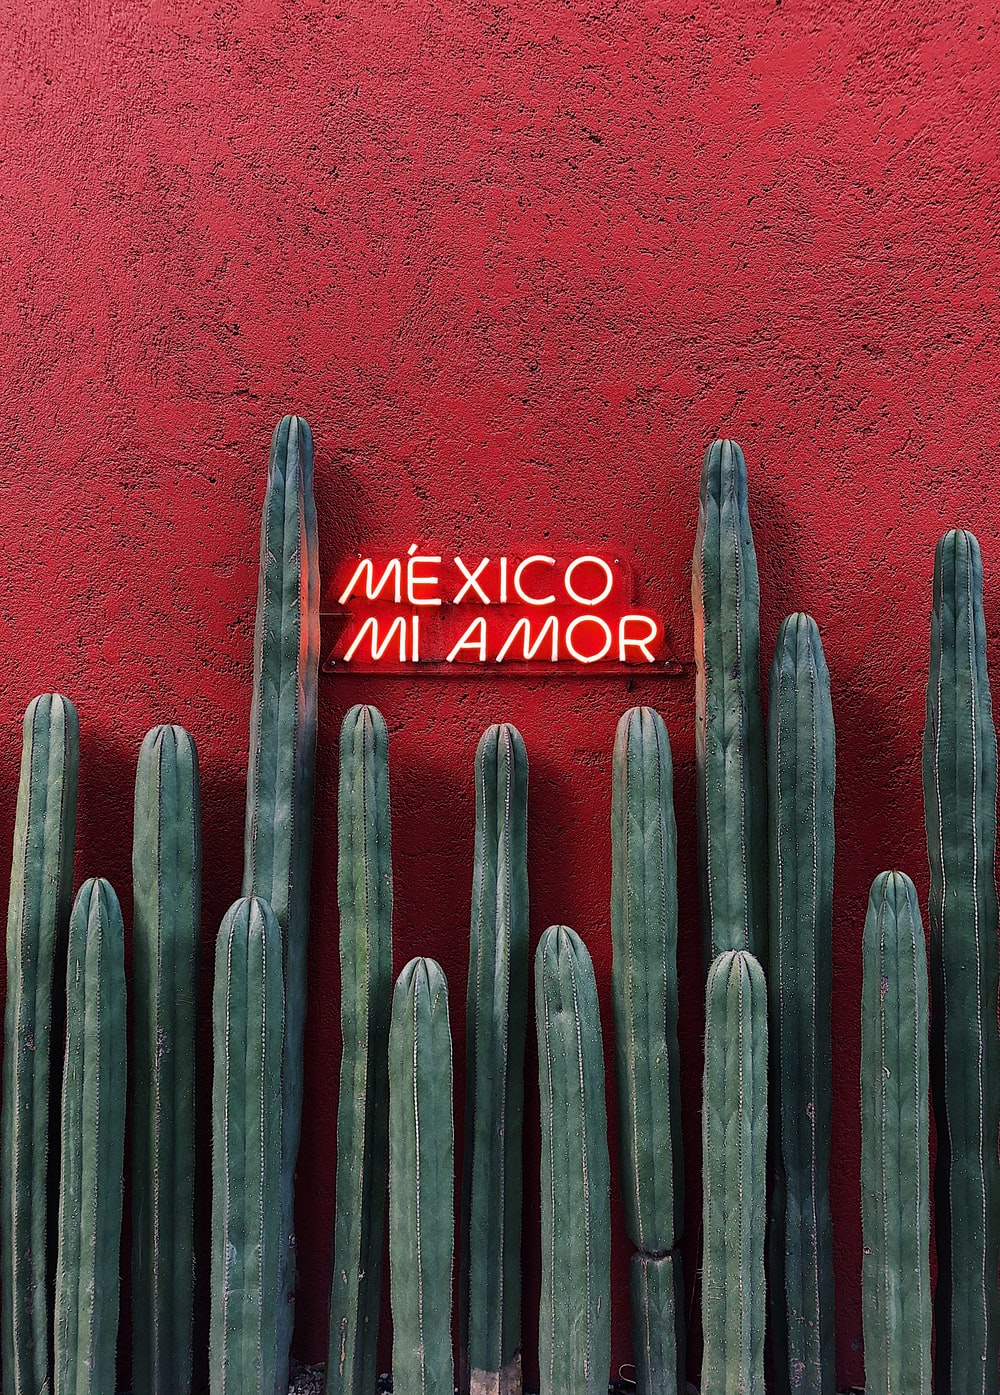 100 Stunning Mexico Pictures Scenic Travel Photos Download Free Images On Unsplash